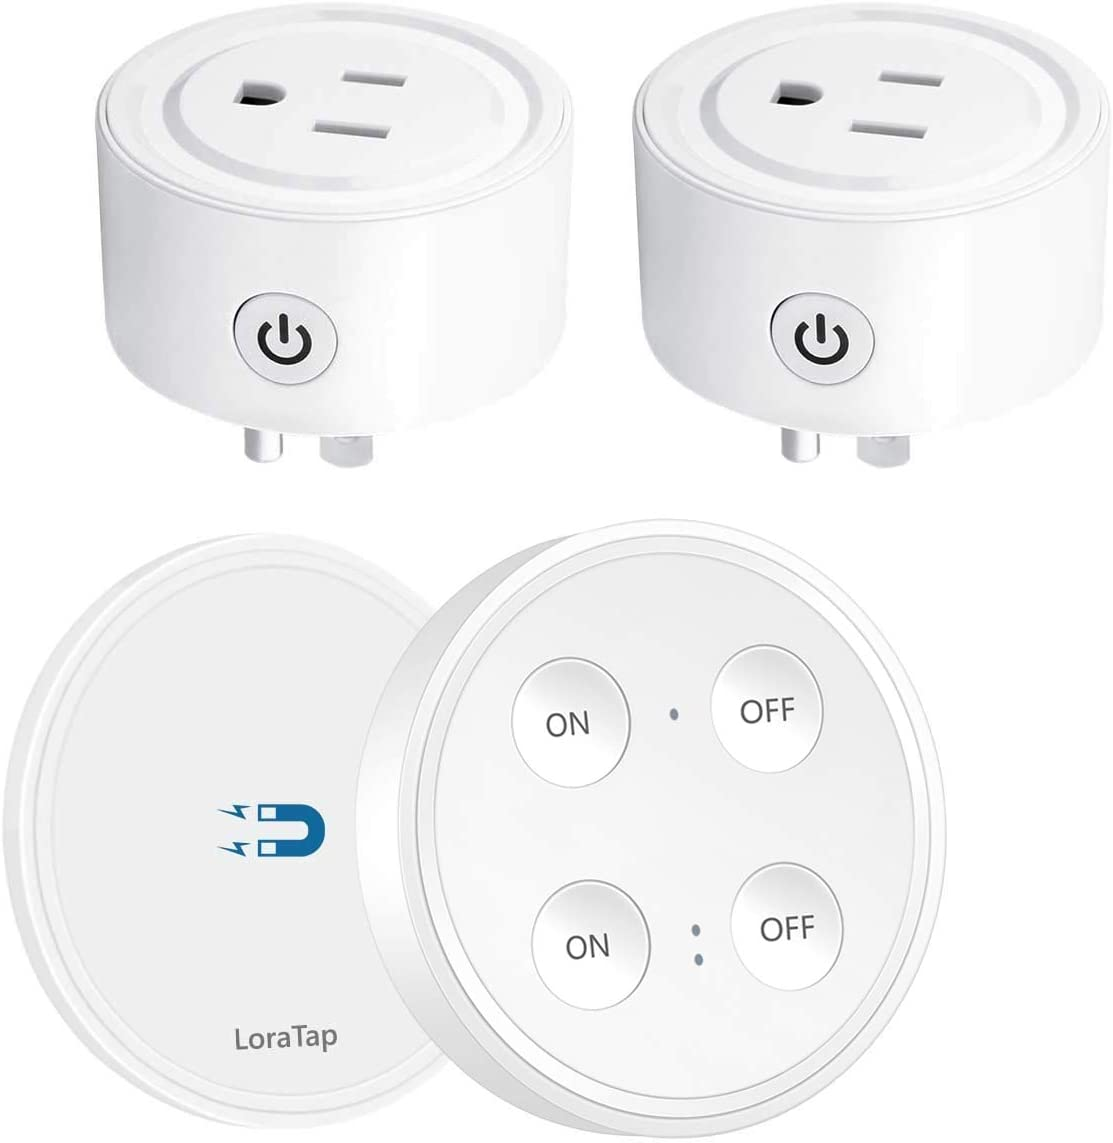 LoraTap Mini Remote Control Outlet Plug Adapter with Remote, 100ft Range Wireless Light Switch for Household Appliances, No Hub Required, 10A/1100W, White, 5 Years Warranty (One Remote + 2 Outlets)